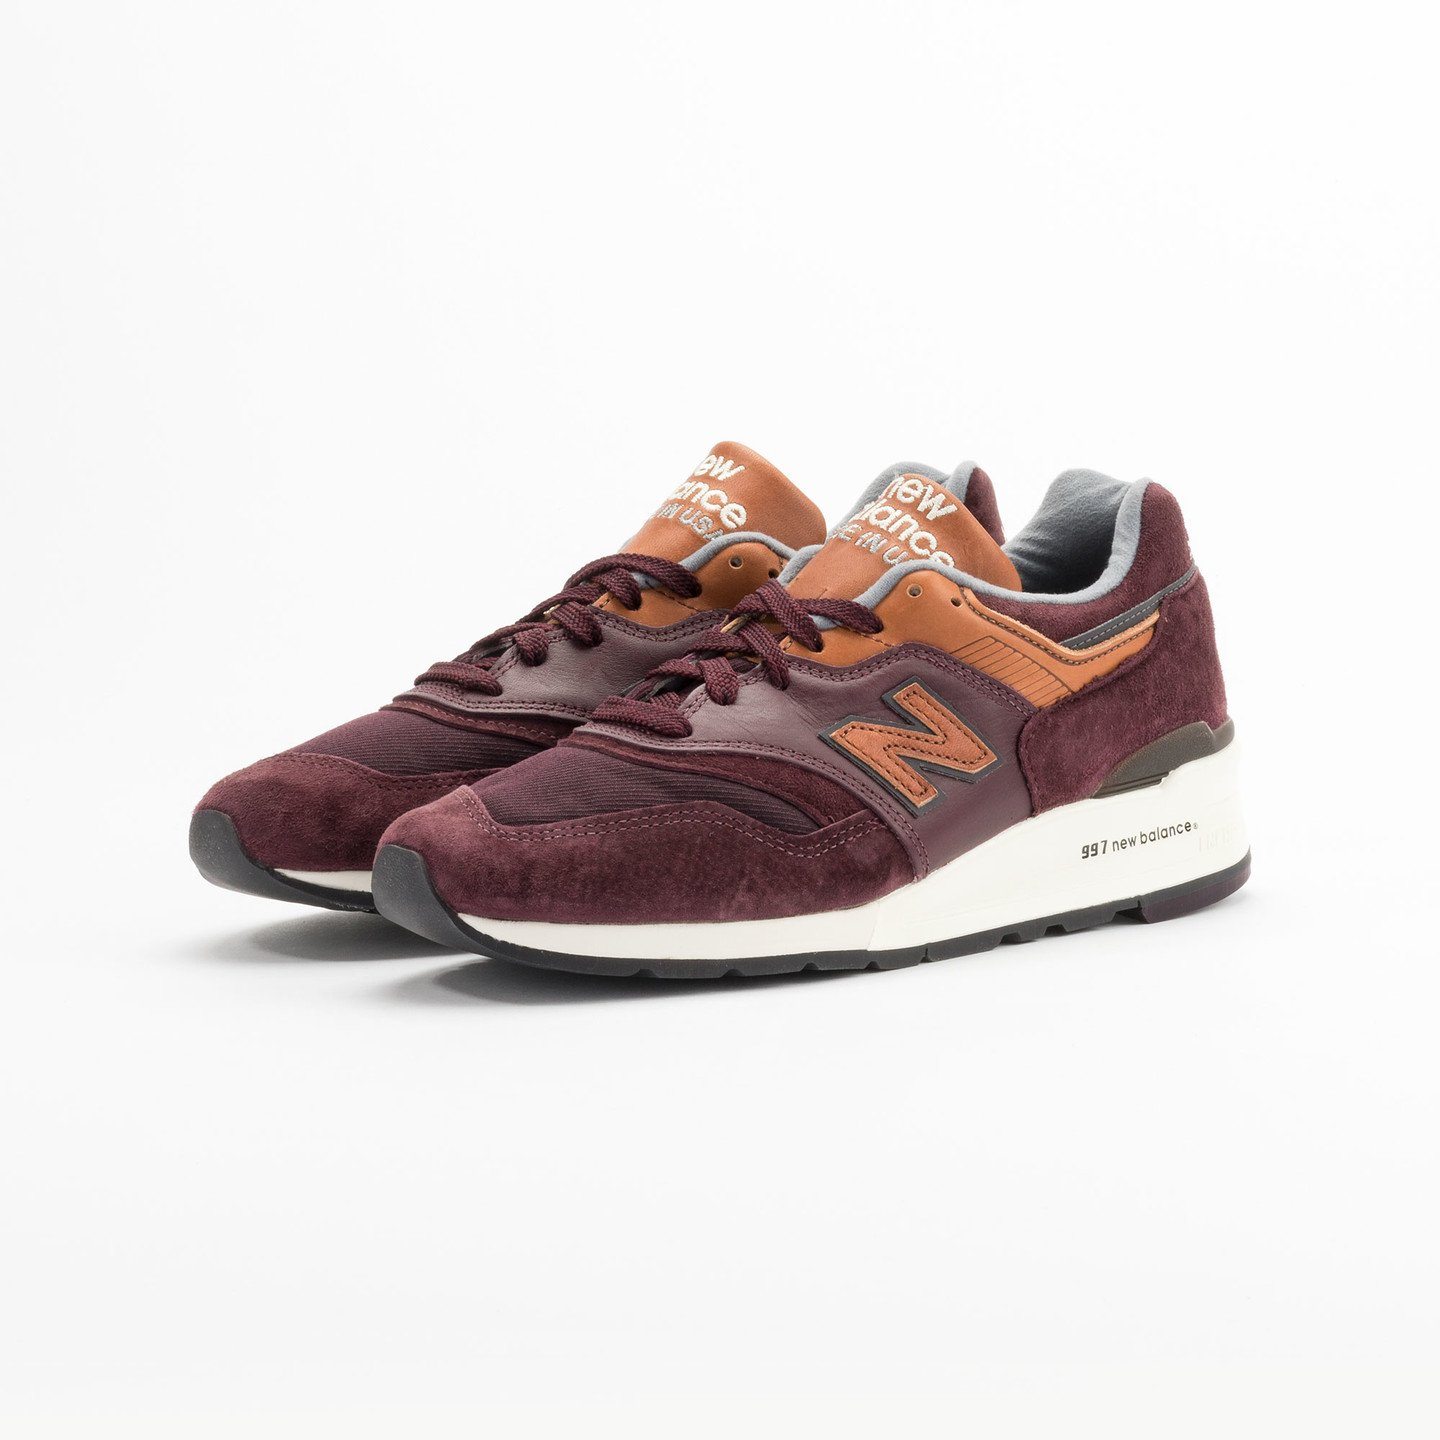 New Balance M997 Made in USA Burgundy / Light Brown M997DSLR-45.5